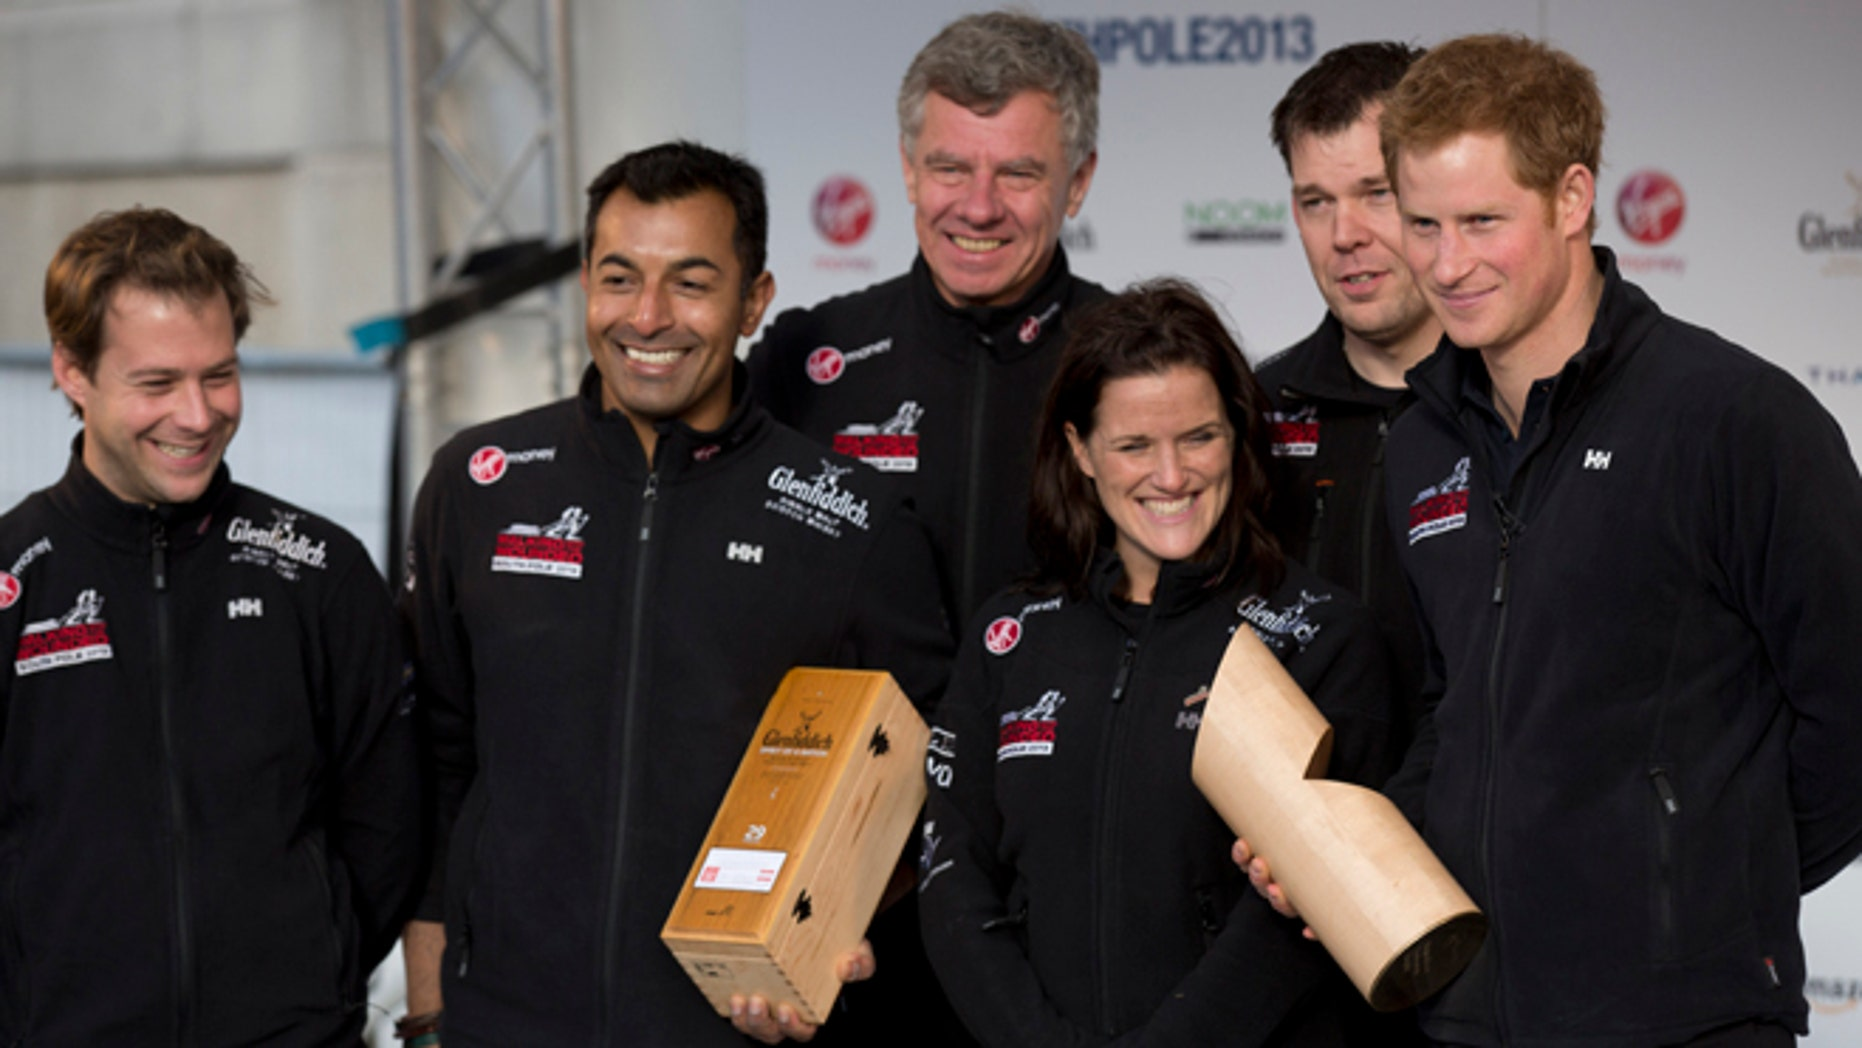 """Nov. 14, 2013: Britain's Prince Harry, right, poses for a group photograph on stage with his teammates, from left, single leg amputee Guy Disney, single leg amputee Ibrar Ali MC, team mentor Richard Eyre, single leg amputee Kate Philp and double leg amputee Duncan Slater during the """"Walking With The Wounded South Pole Allied Challenge"""" departure event in Trafalgar Square, London."""